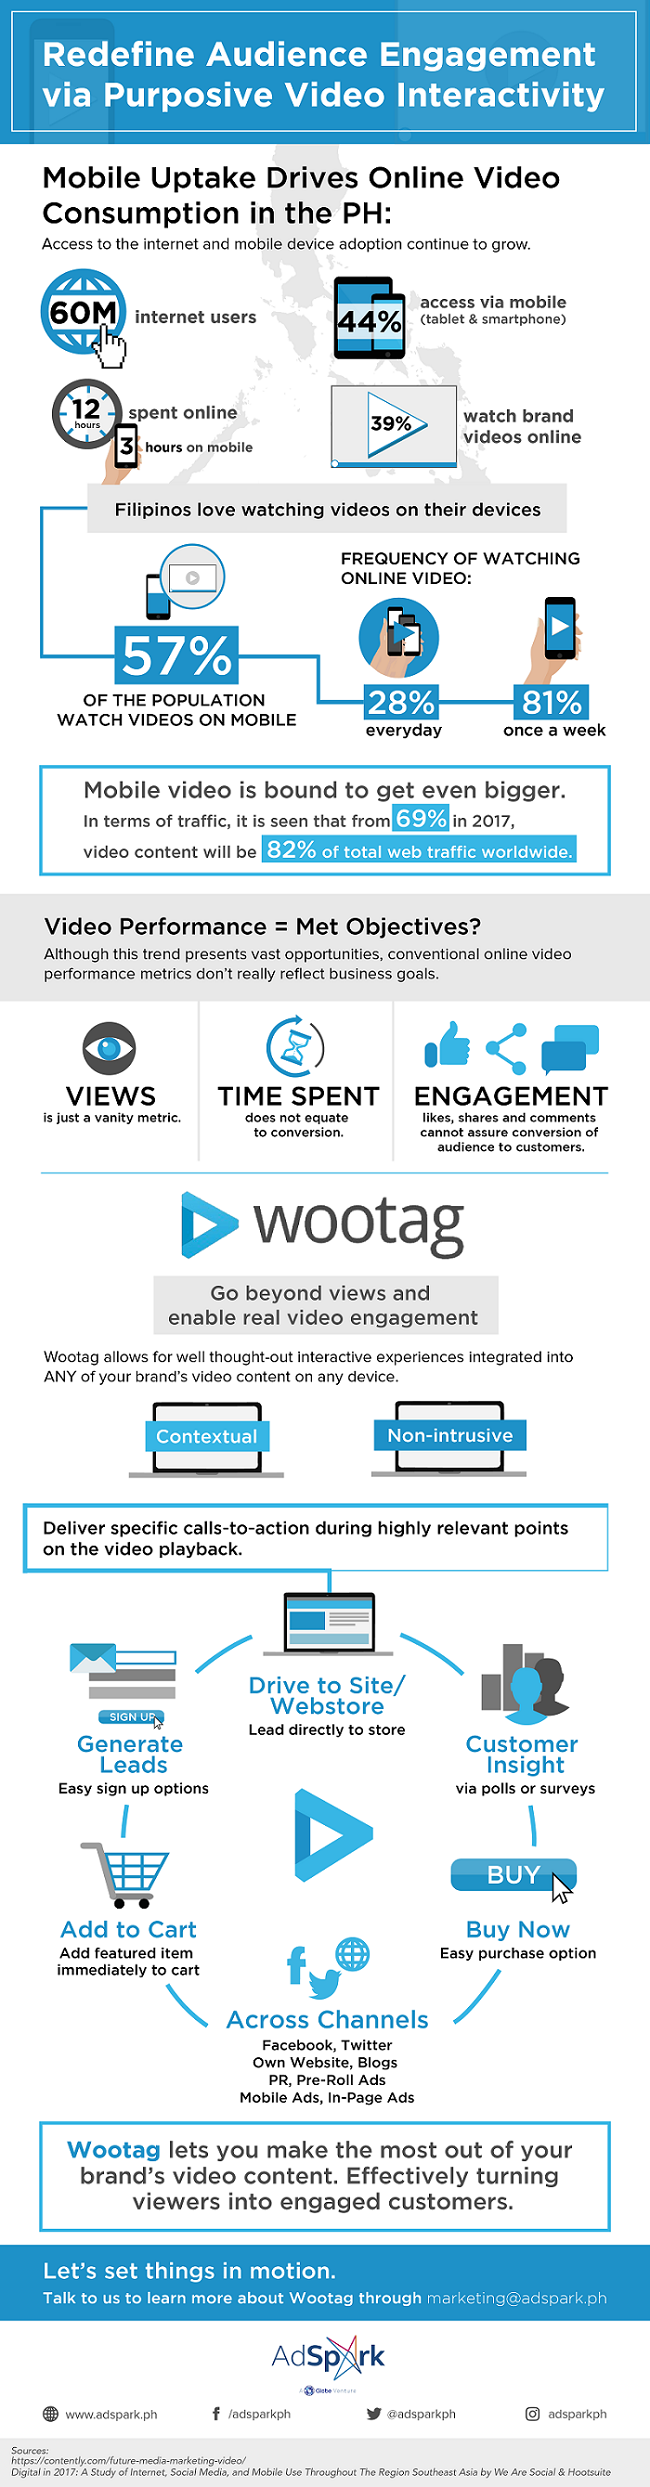 Wootag allows for well thought-out interactive brand video ad experiences integrated into ANY of your brand's video content on any device